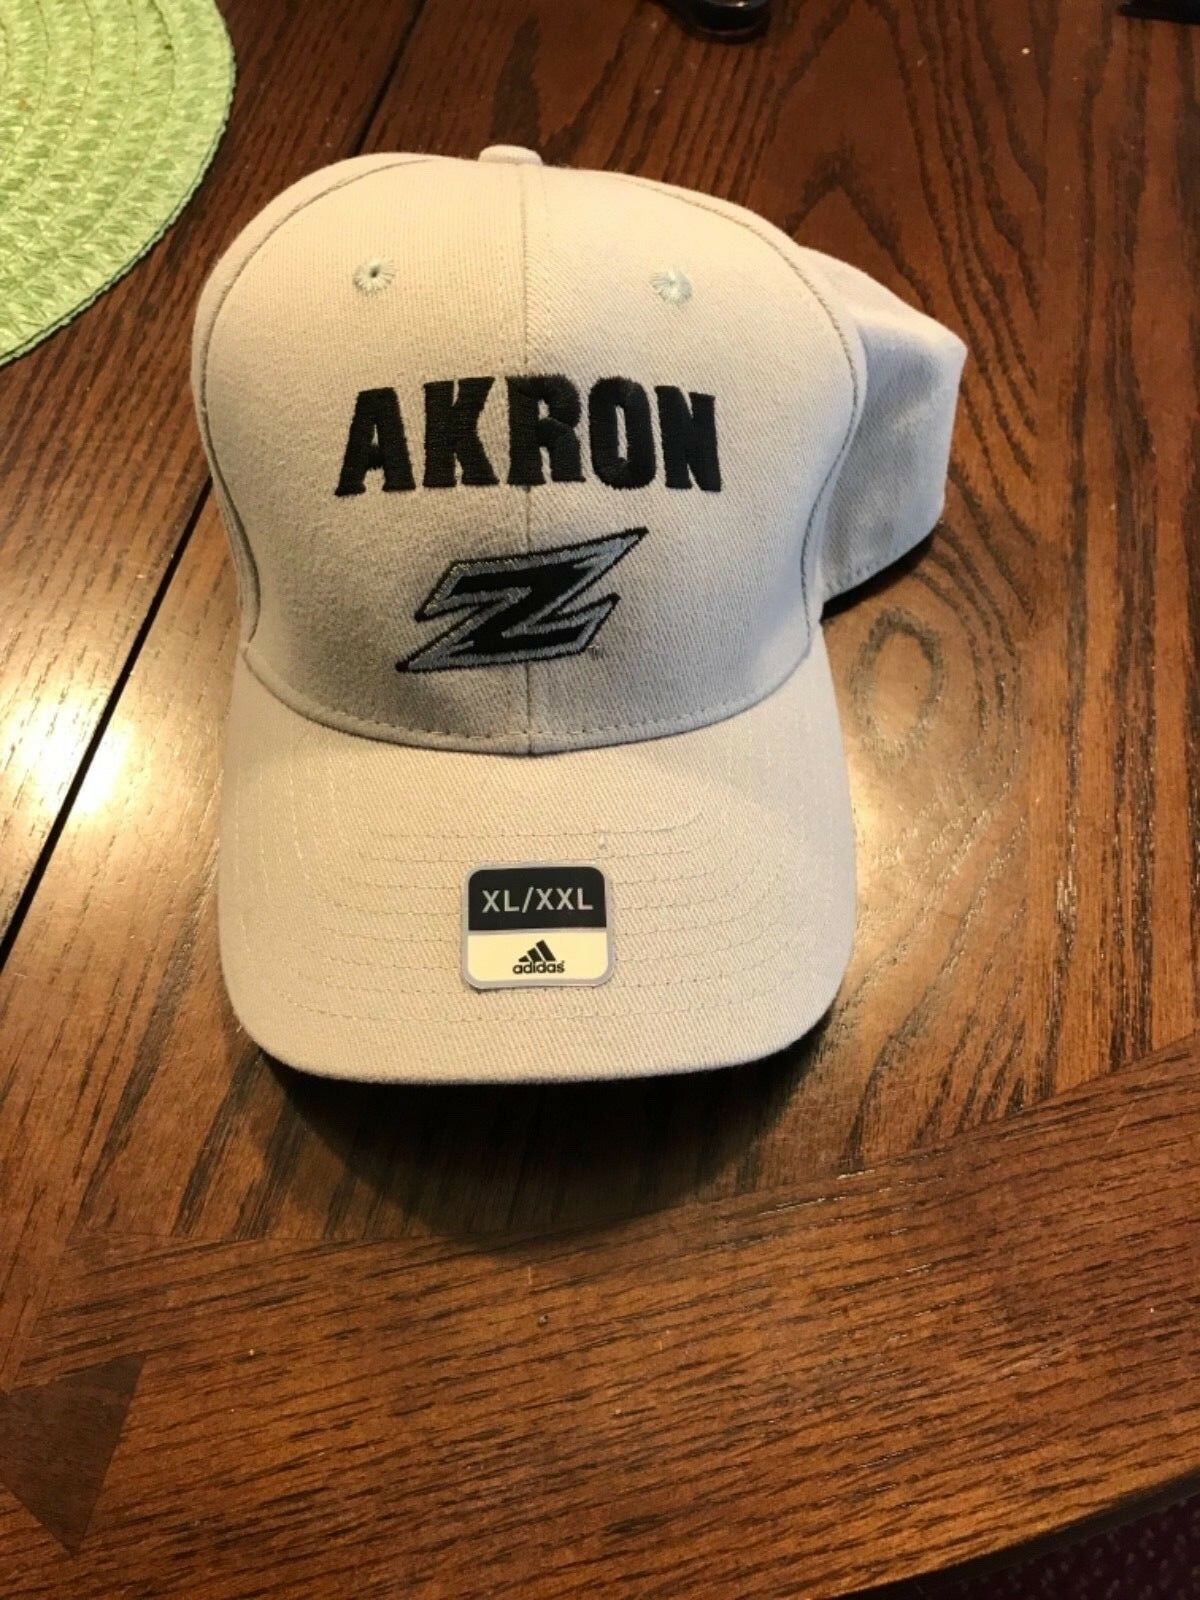 Adidas MENS HAT - AKRON ZIPS - gray - new - football - one s